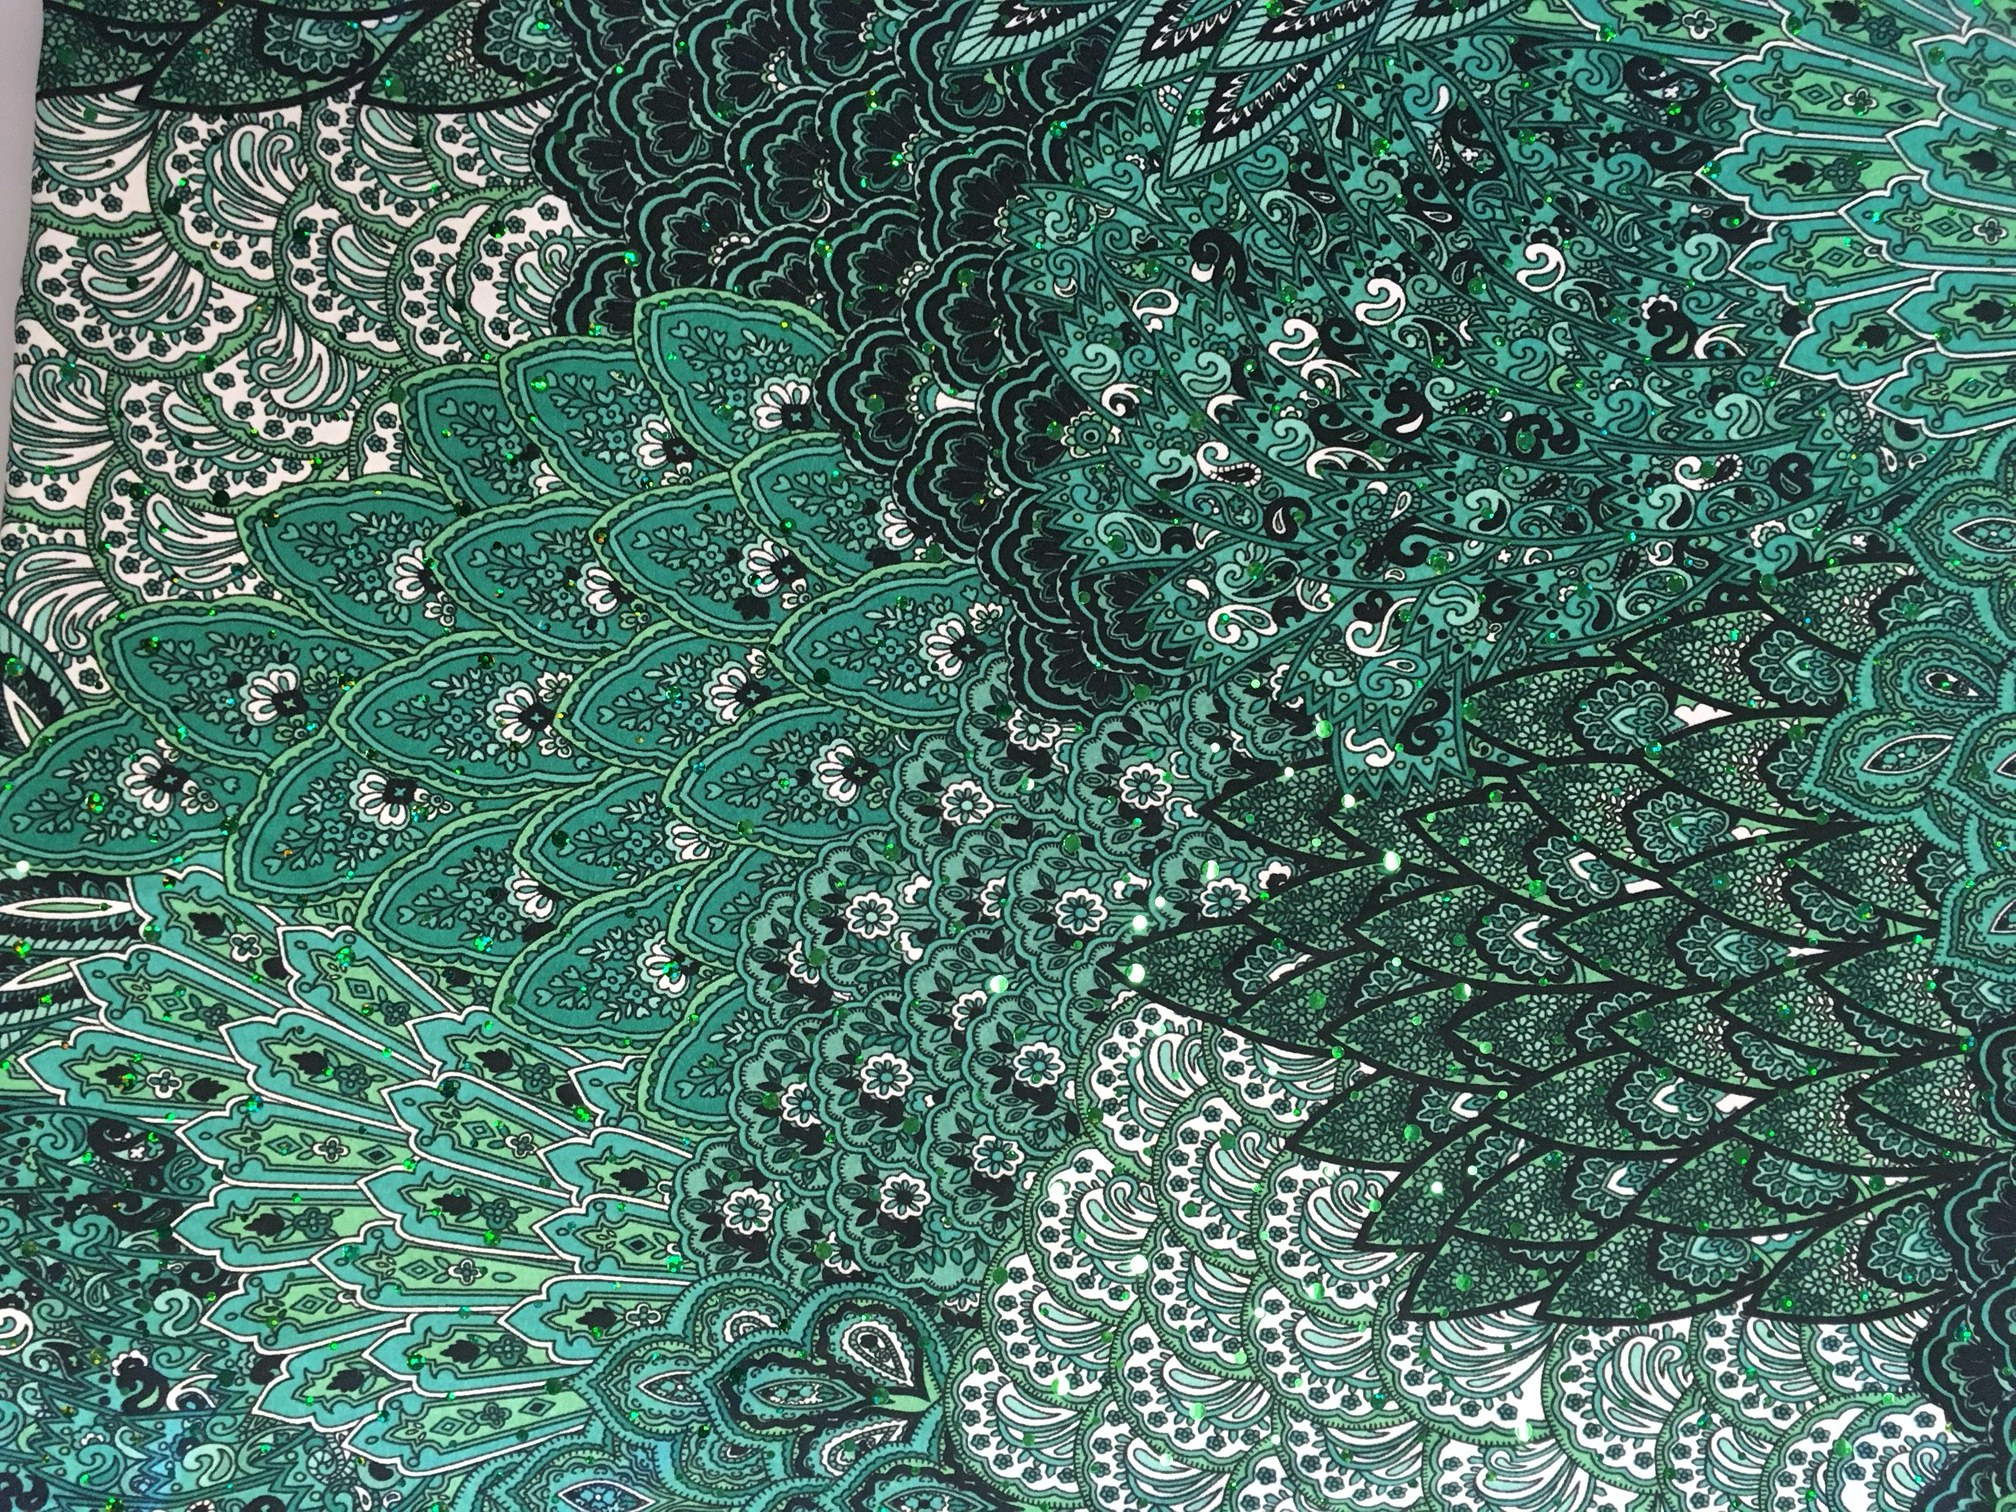 Emerald City (Holographic sequins)